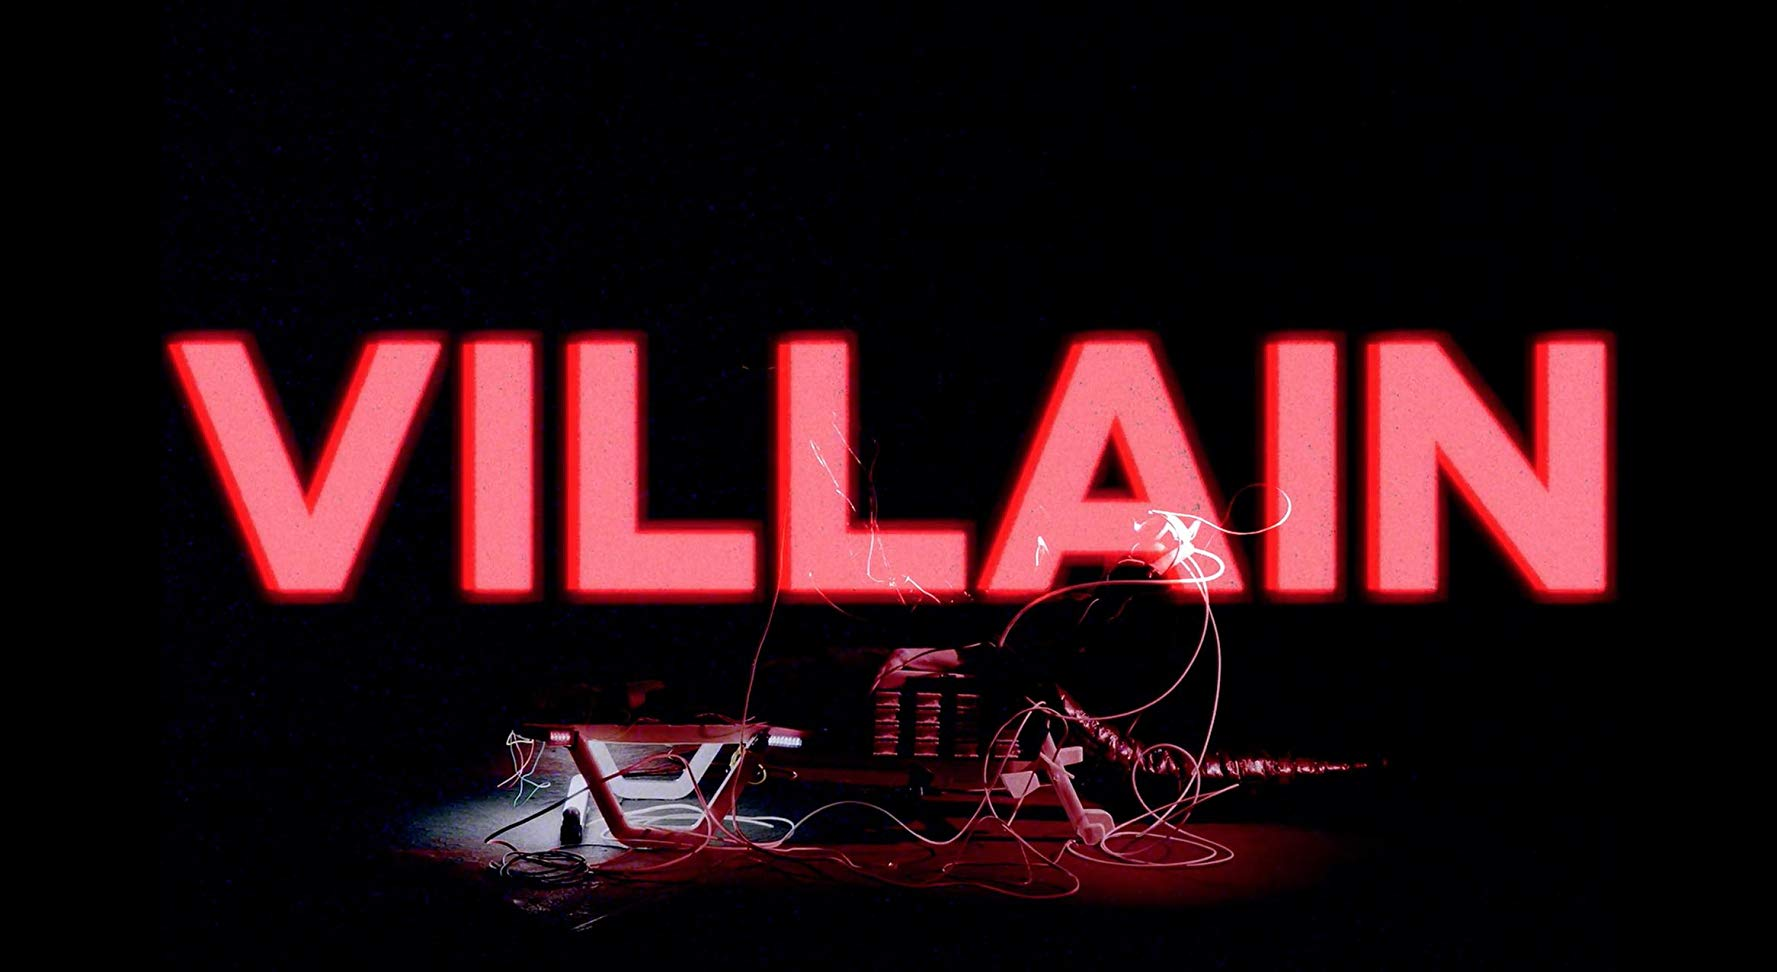 Villain 2018 Bengali 720p HDRip x264 AAC 5 1 ESubs -UnknownStAr [Telly]